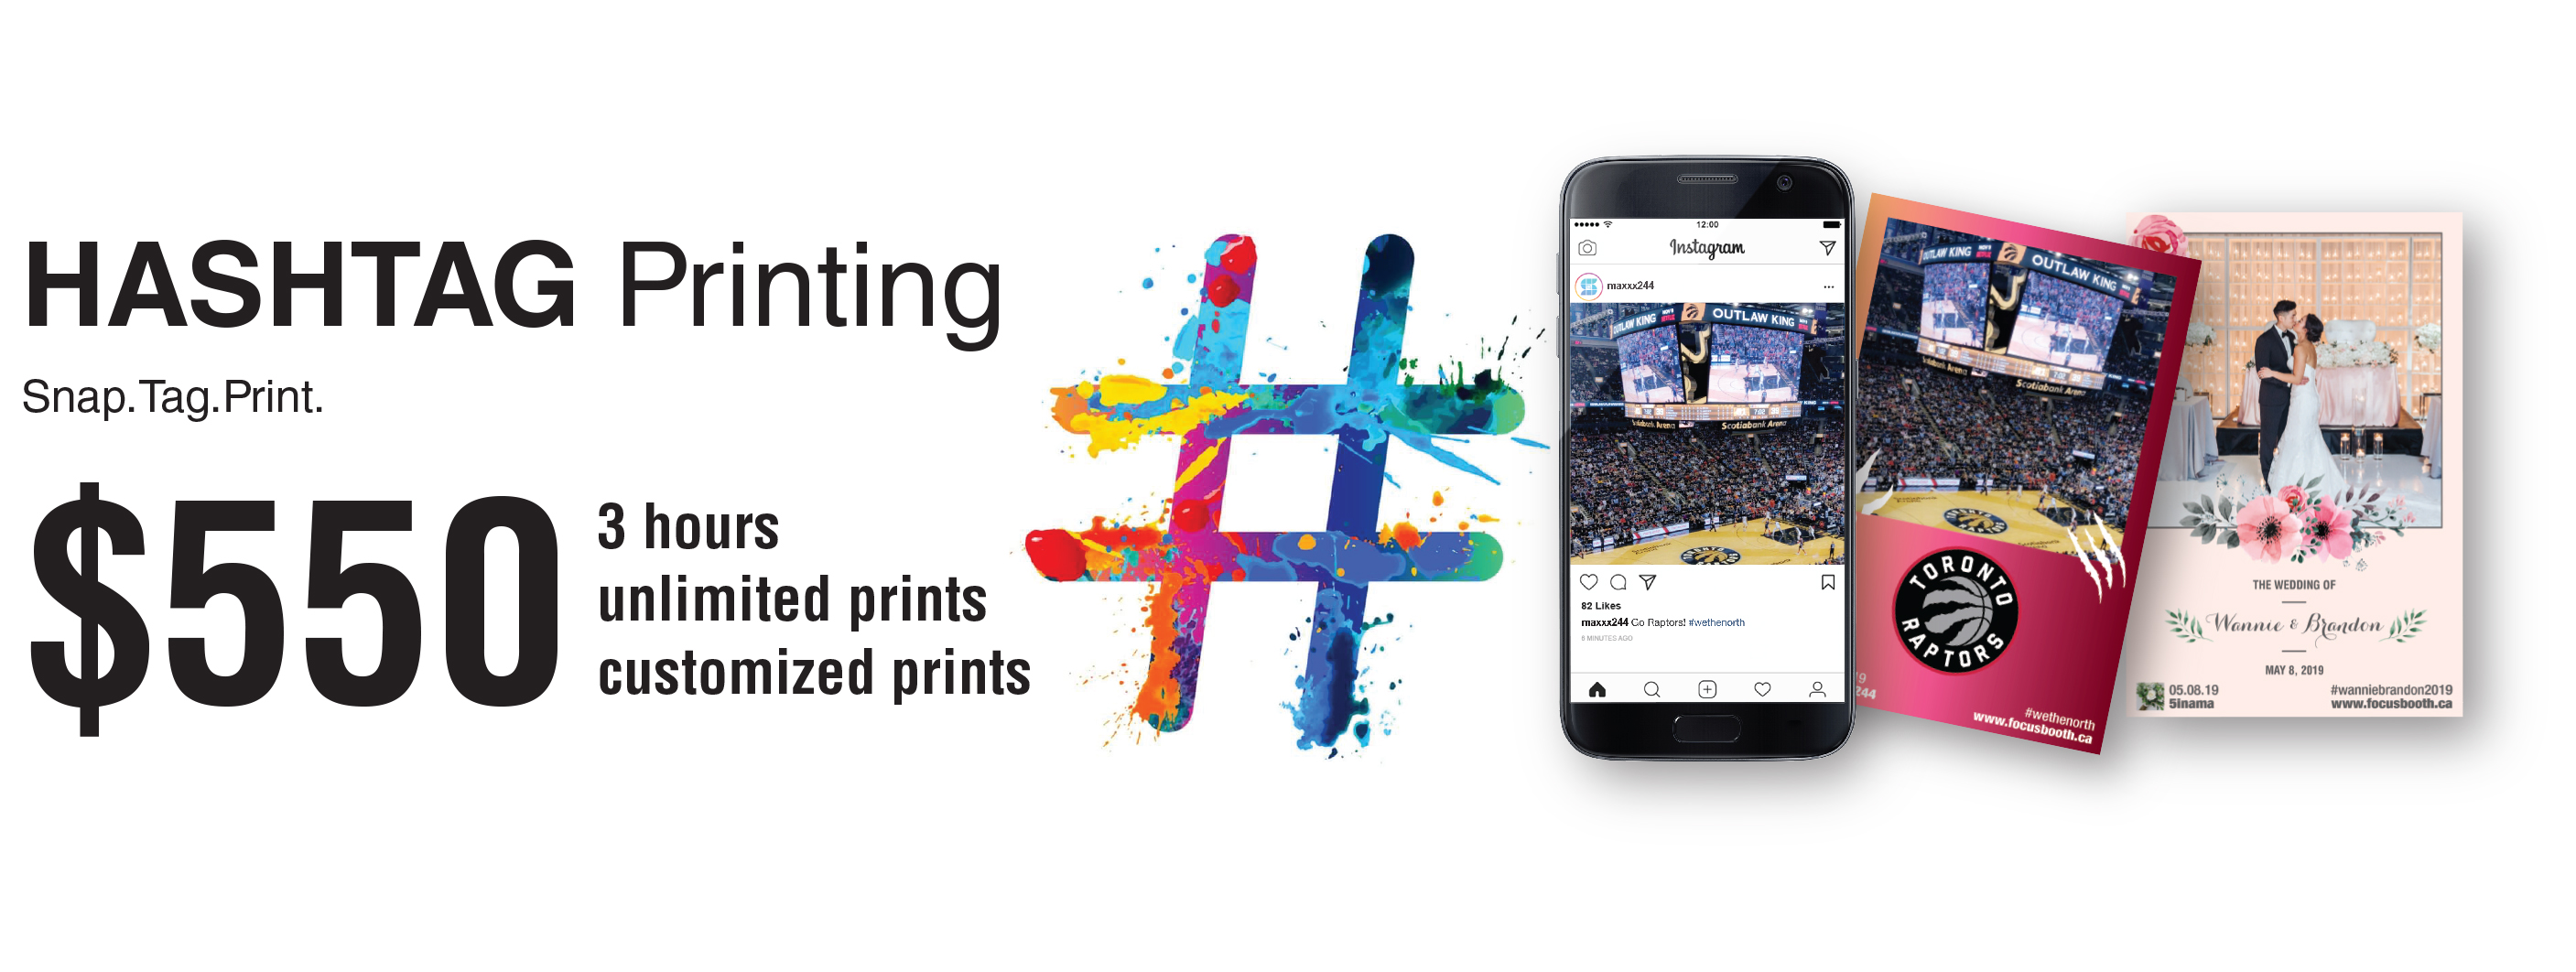 hashtag printing promotion focusbooth